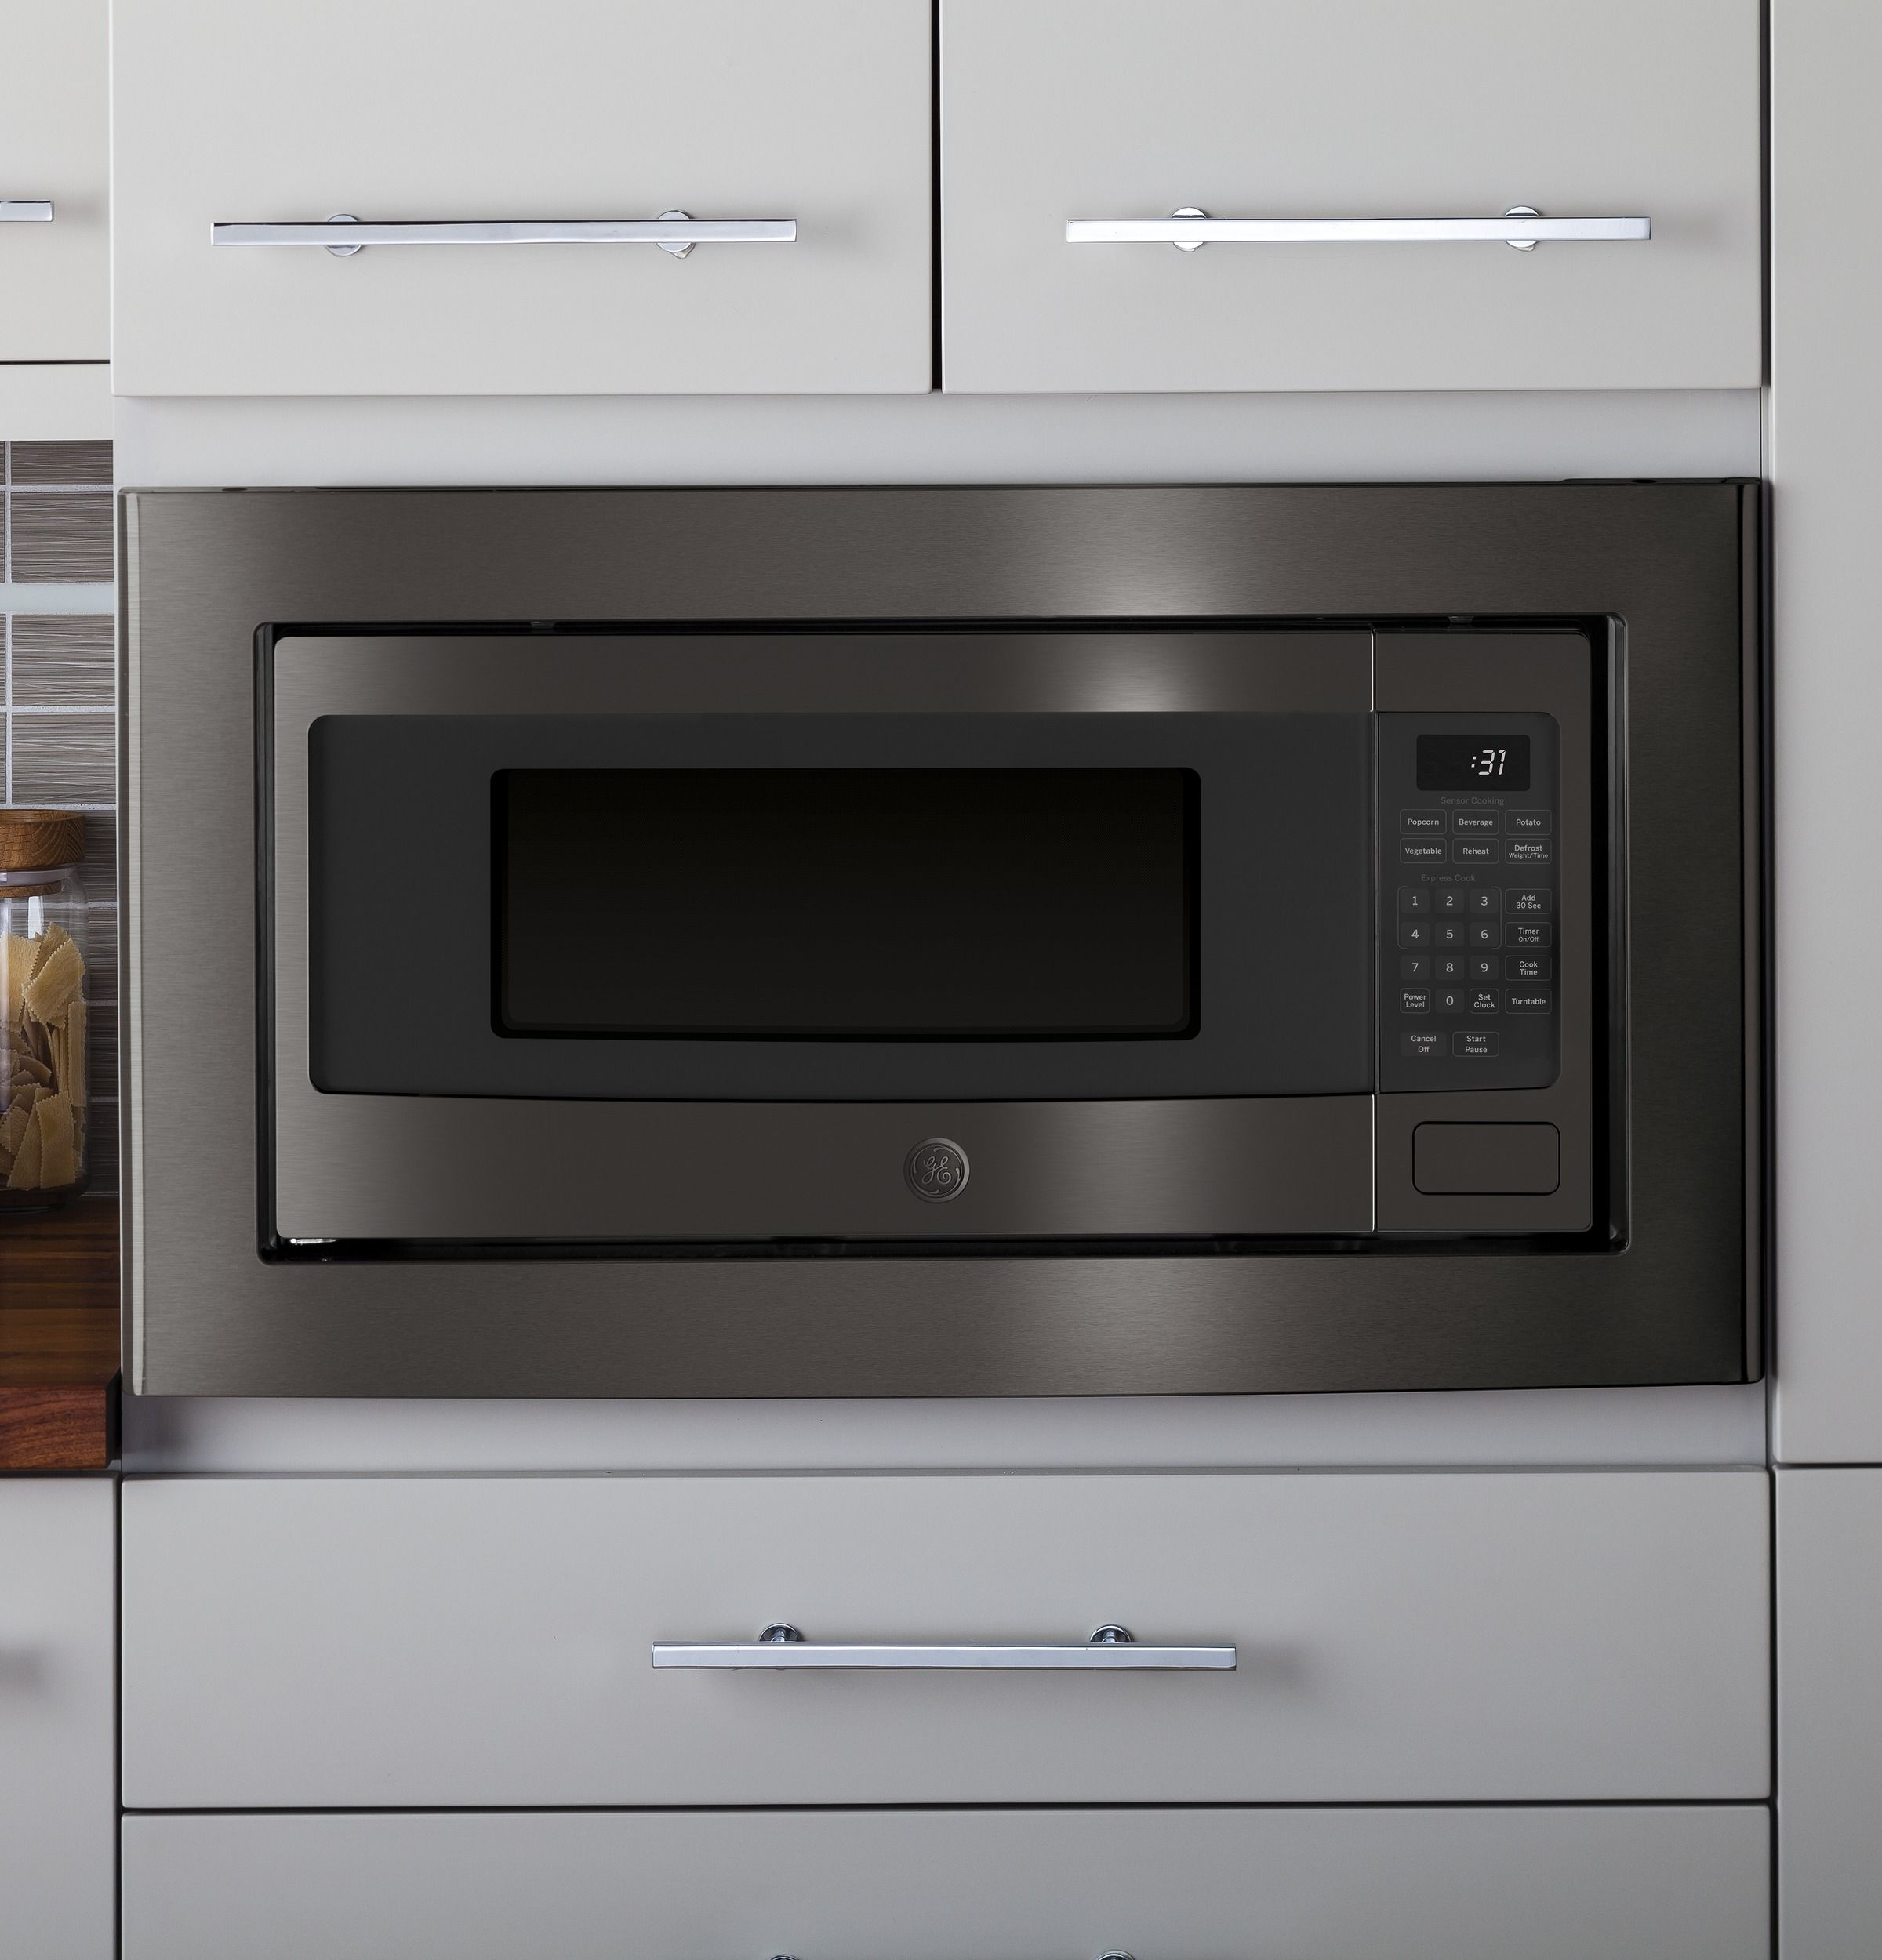 Ge Profile 1 1 Cu Ft Countertop Microwave Oven Pem31bmts Ge Appliances In 2020 Countertop Microwave Microwave Oven Black Microwave